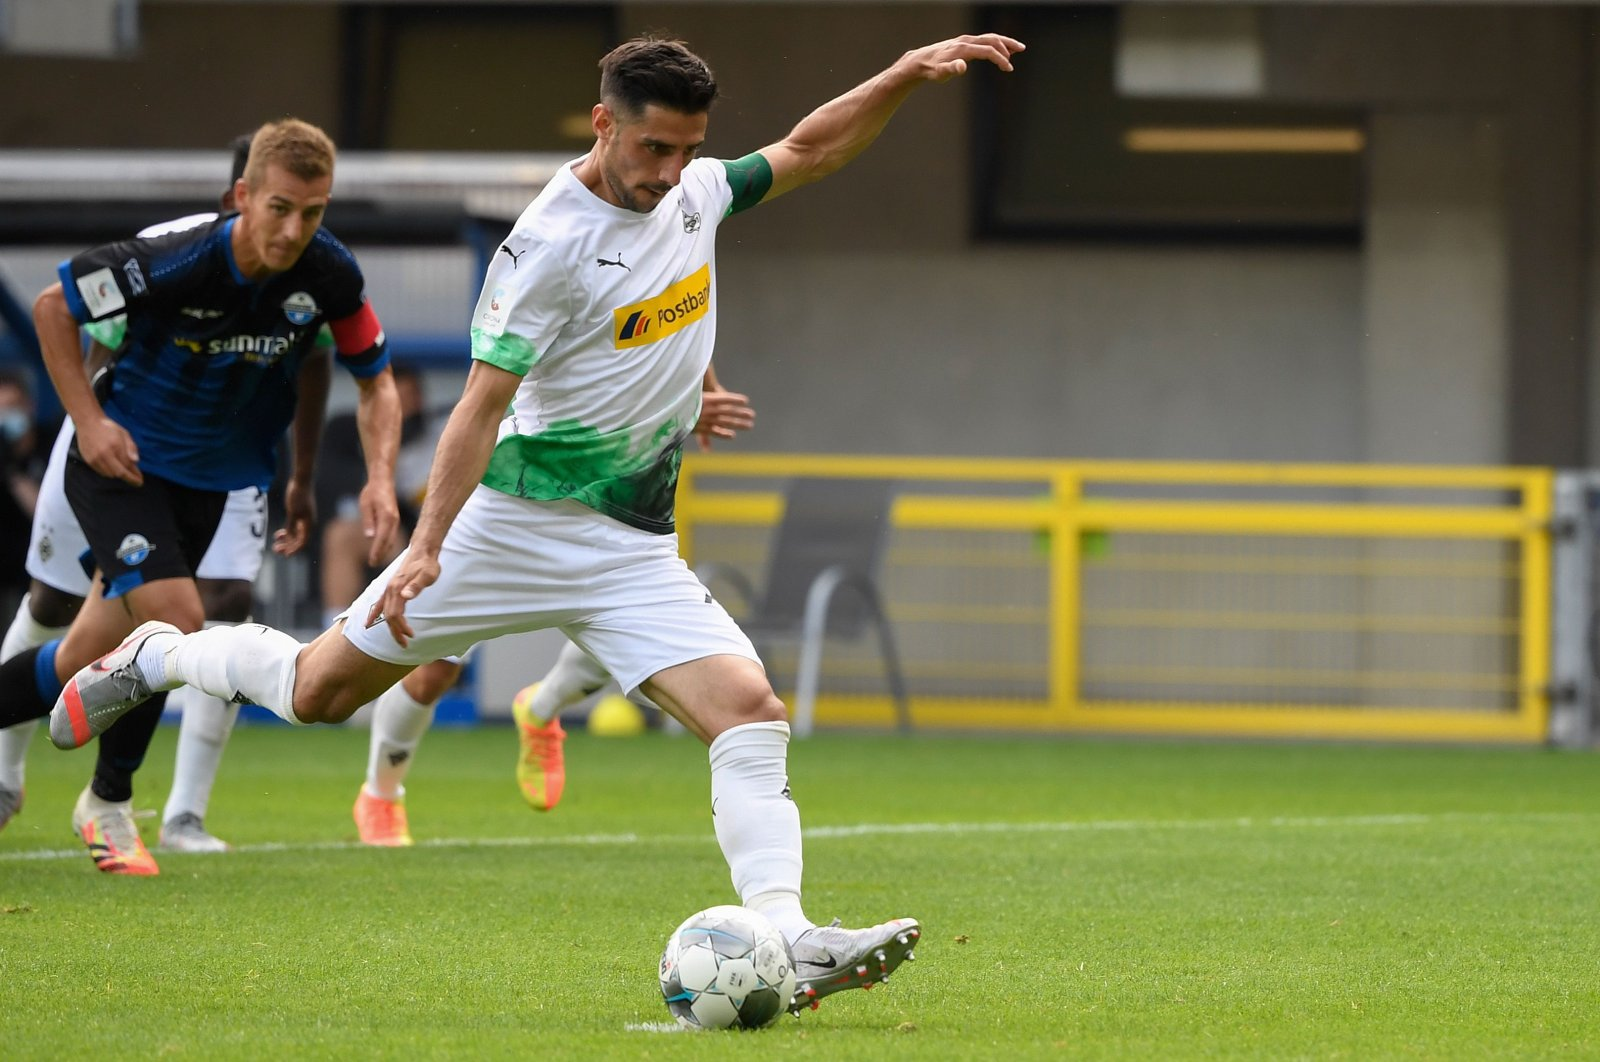 Monchengladbach's Lars Stindl scores from the penalty spot during the Bundesliga match against SC Paderborn in Paderborn, Germany, June 20, 2020. (AFP Photo)